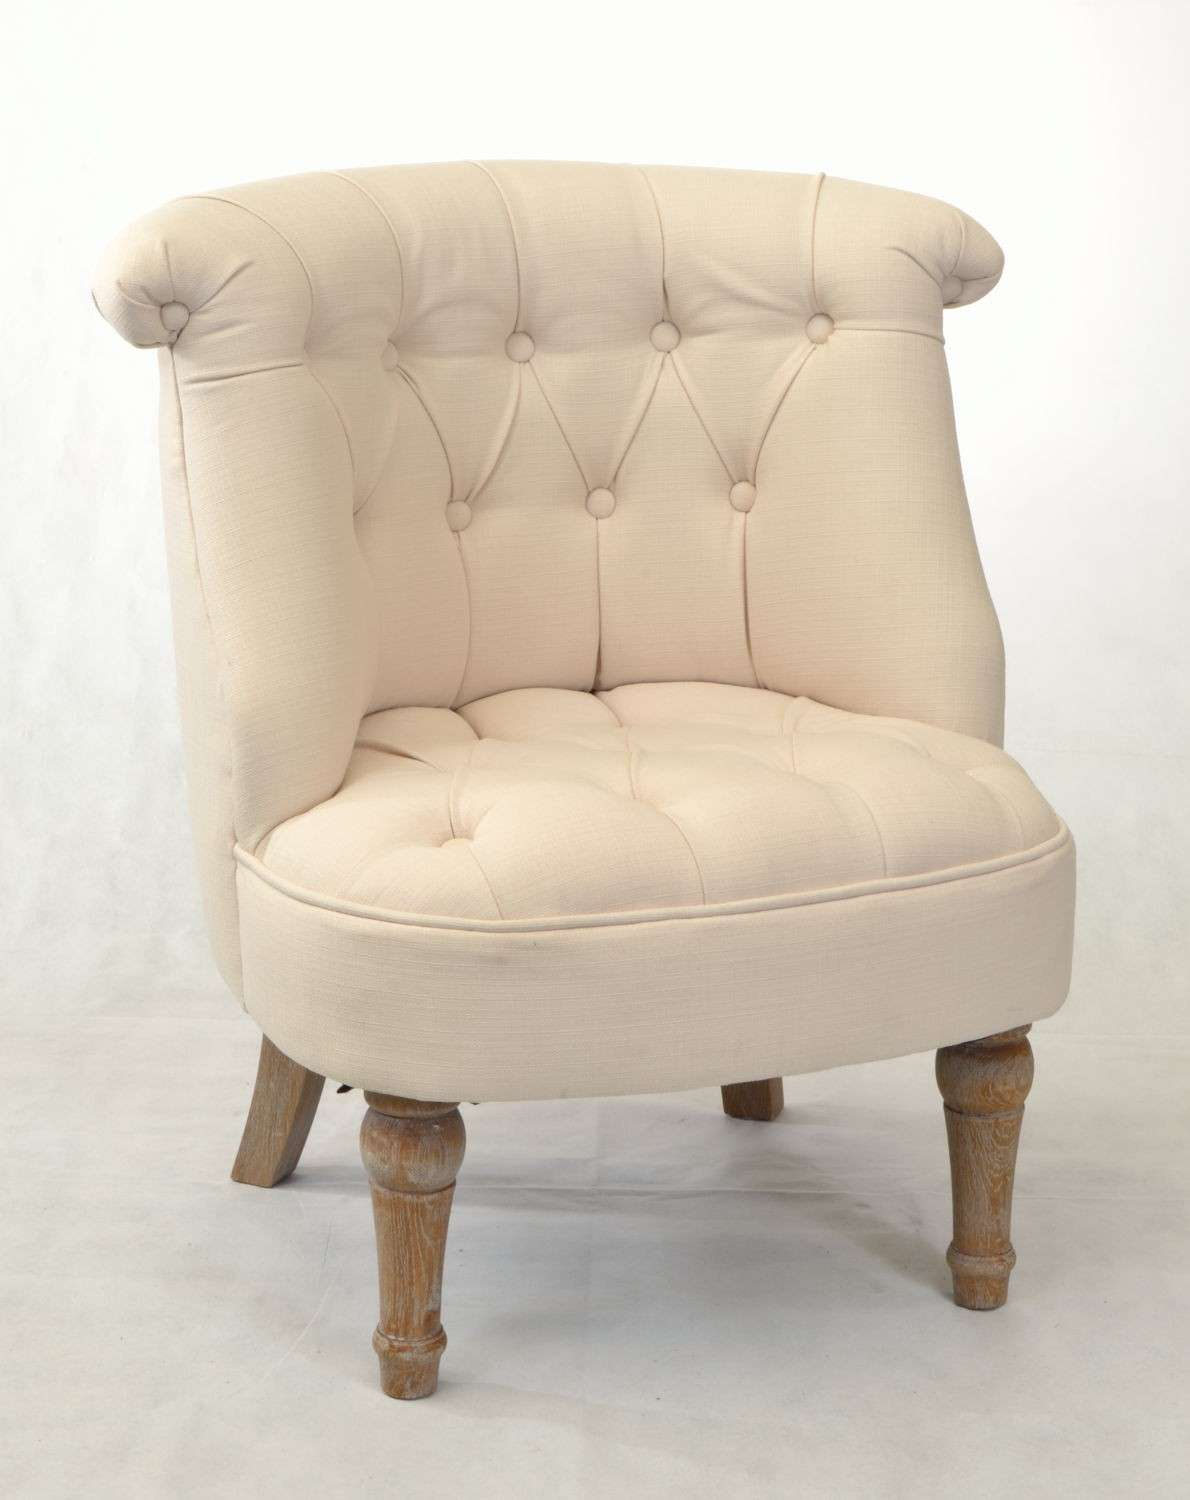 Buy Small Bedroom Chair Accent Piece Your Room